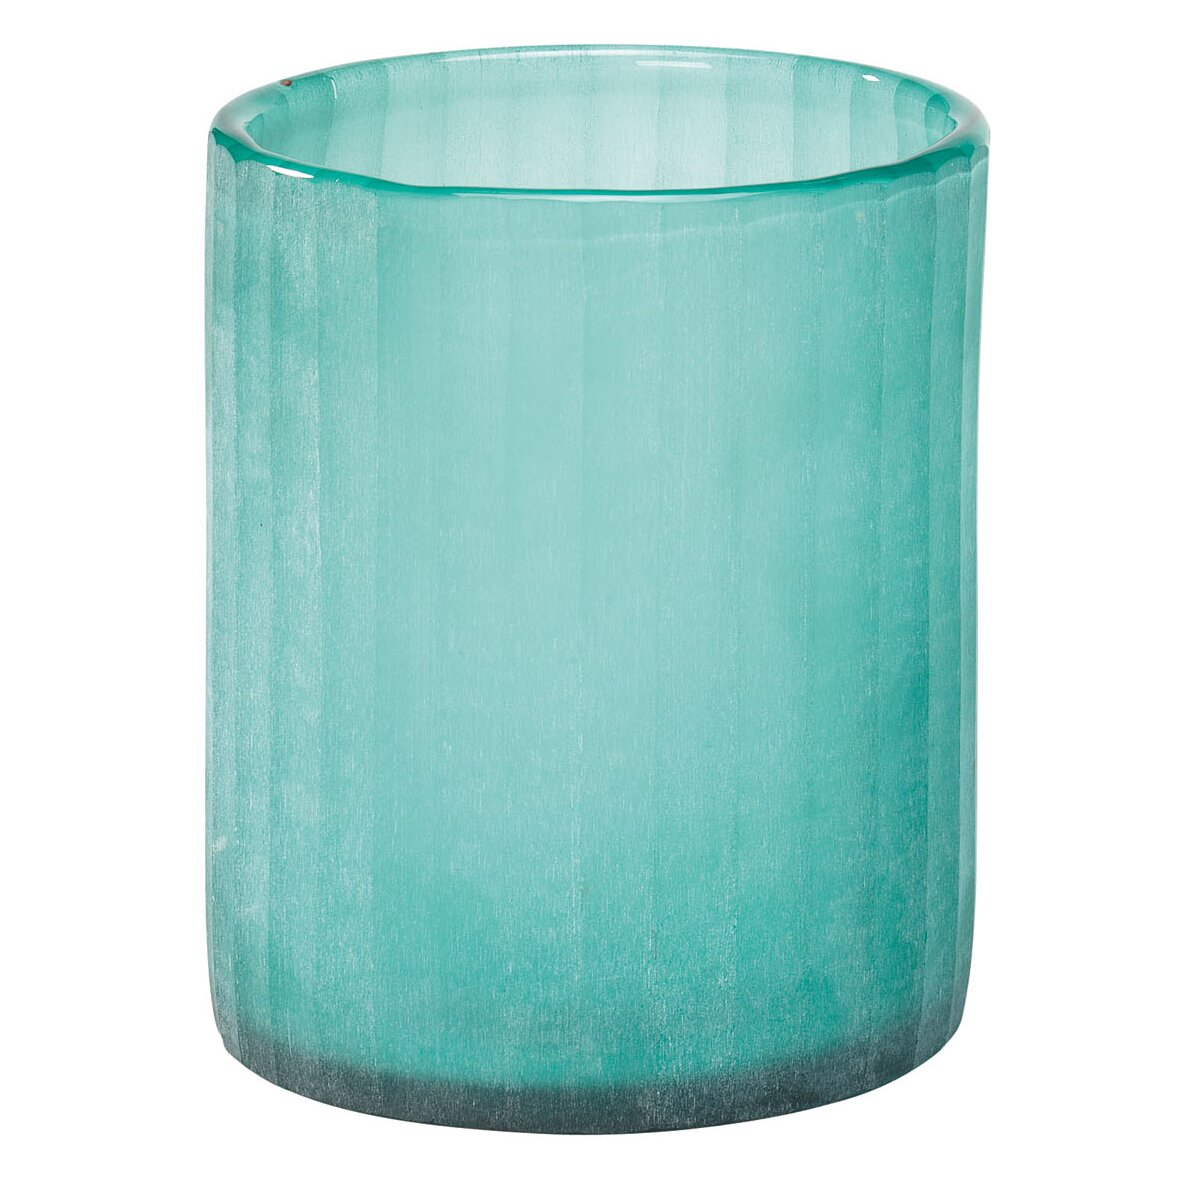 Jcp Bedroom Furniture Jamie Young Company Seaglass Candle Hurricane Amp Reviews